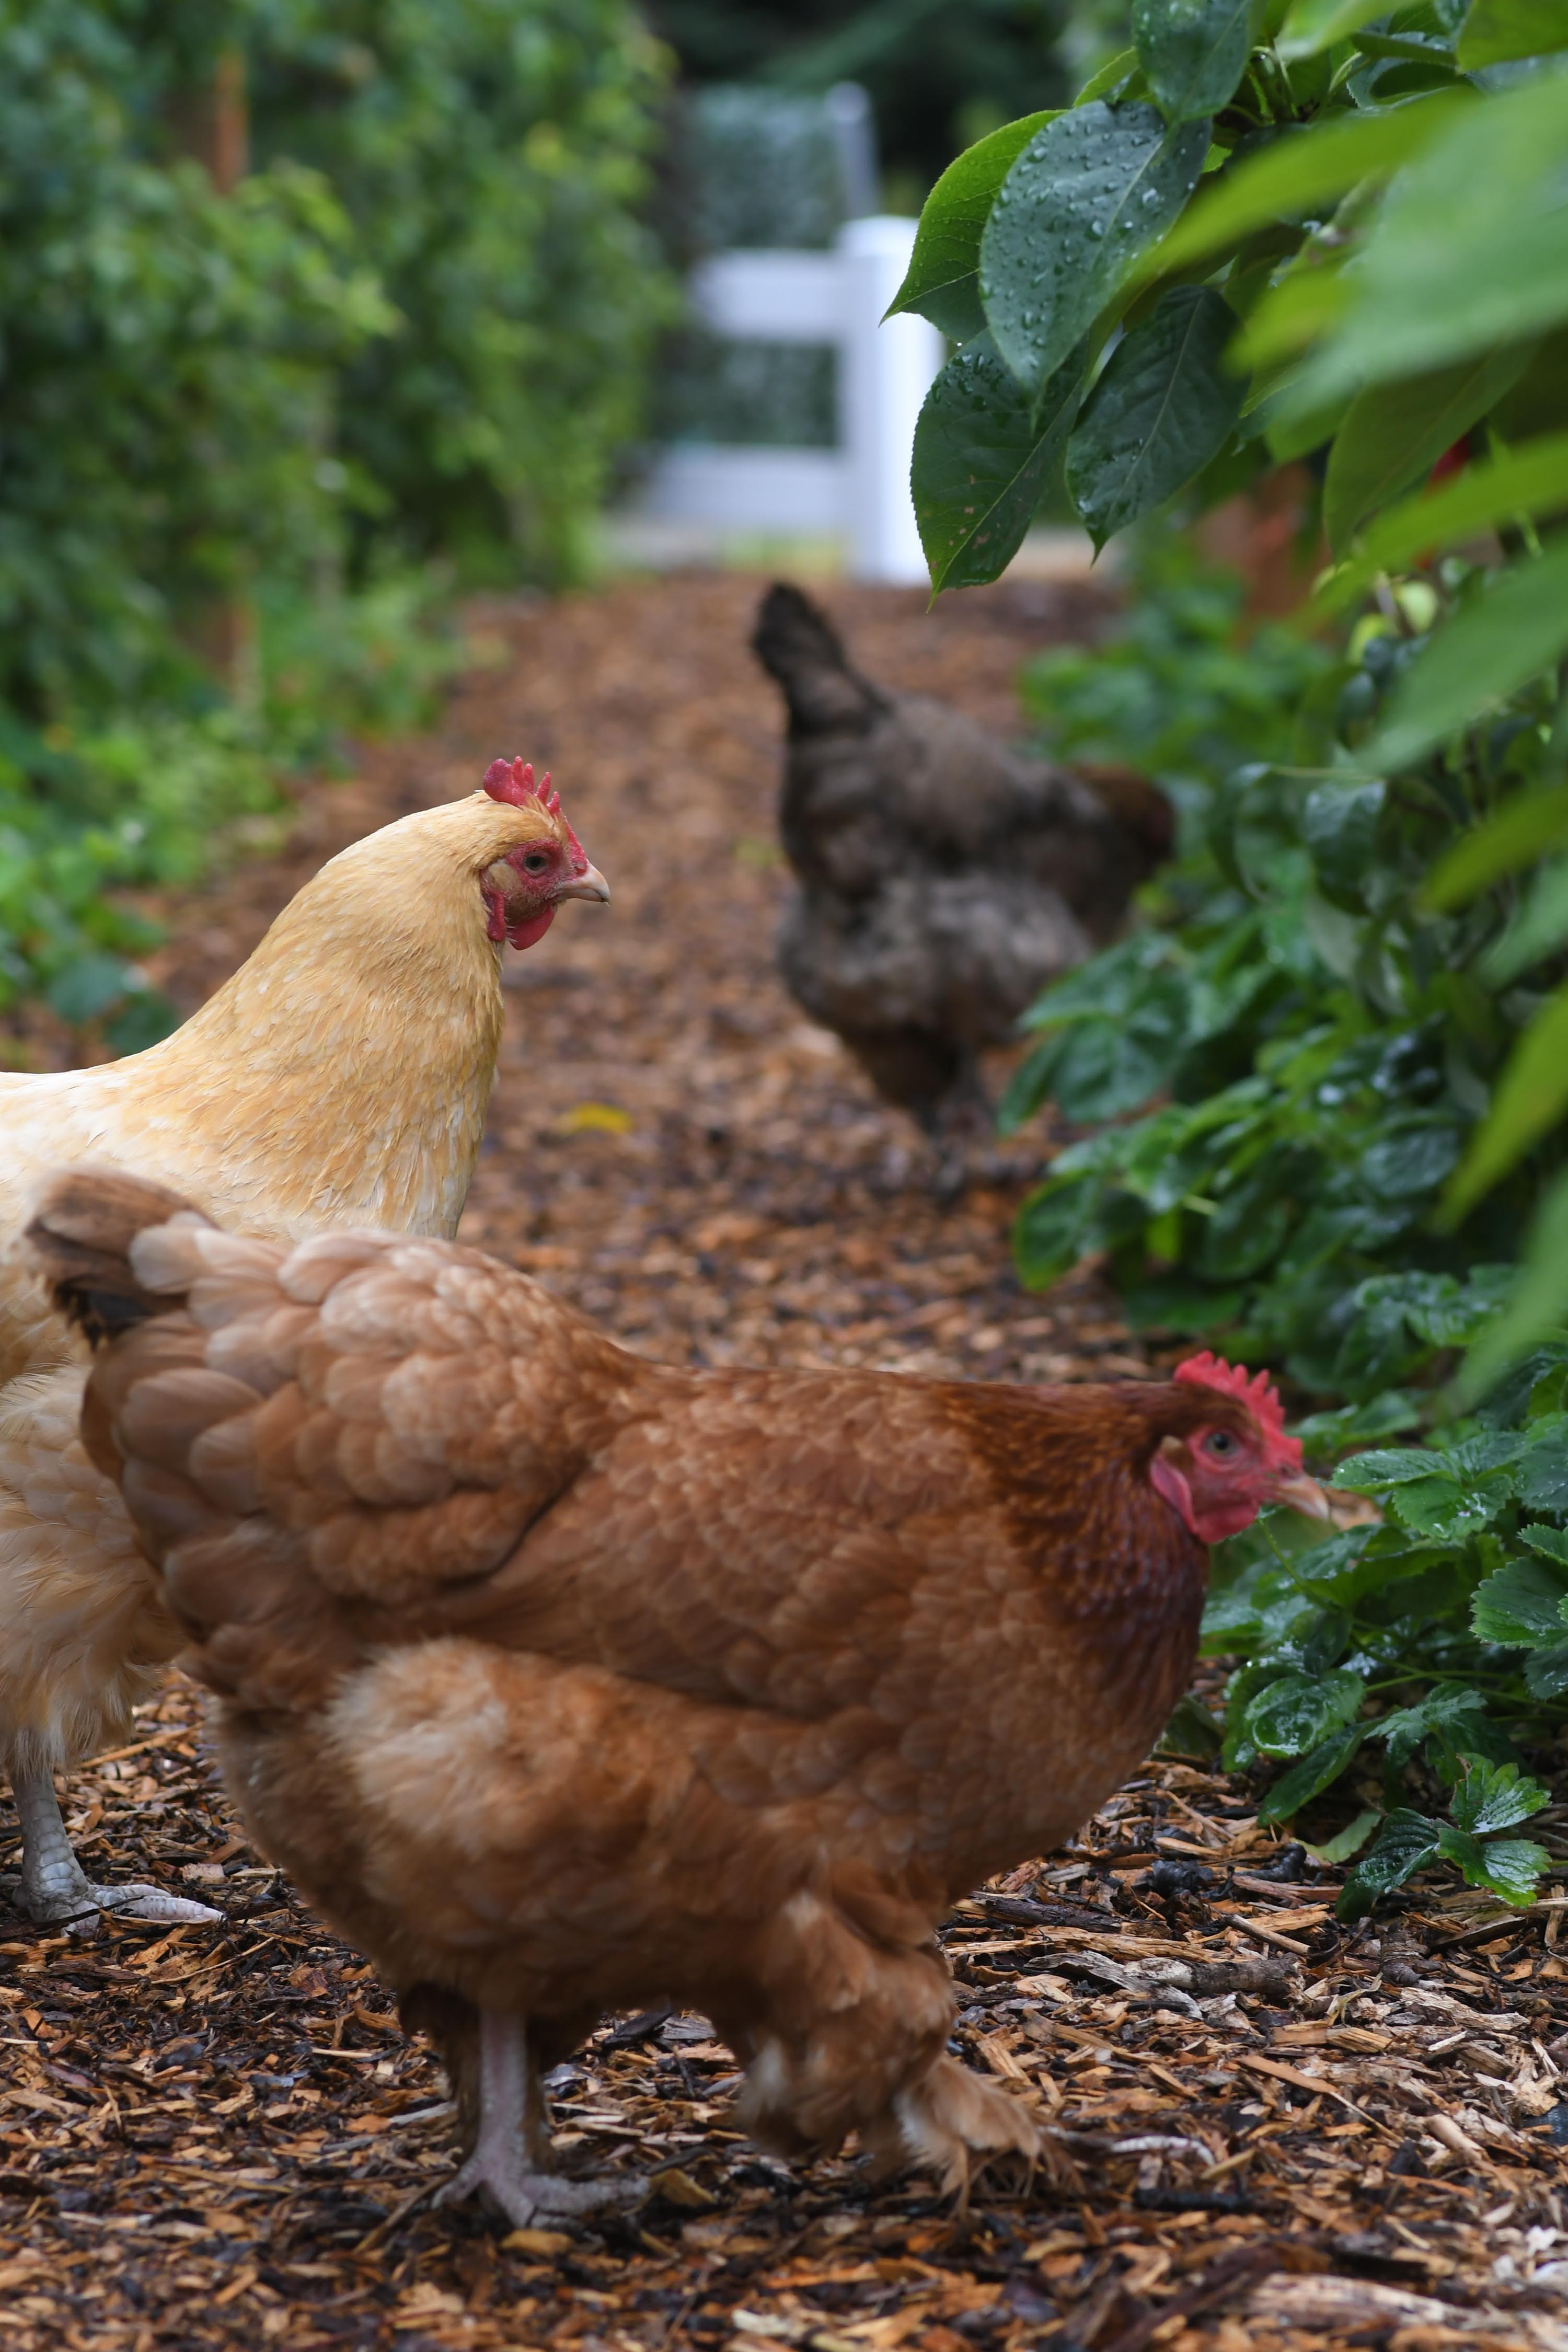 A dark brown, light brown and yellow chicken in a walkway surrounded by greenery.